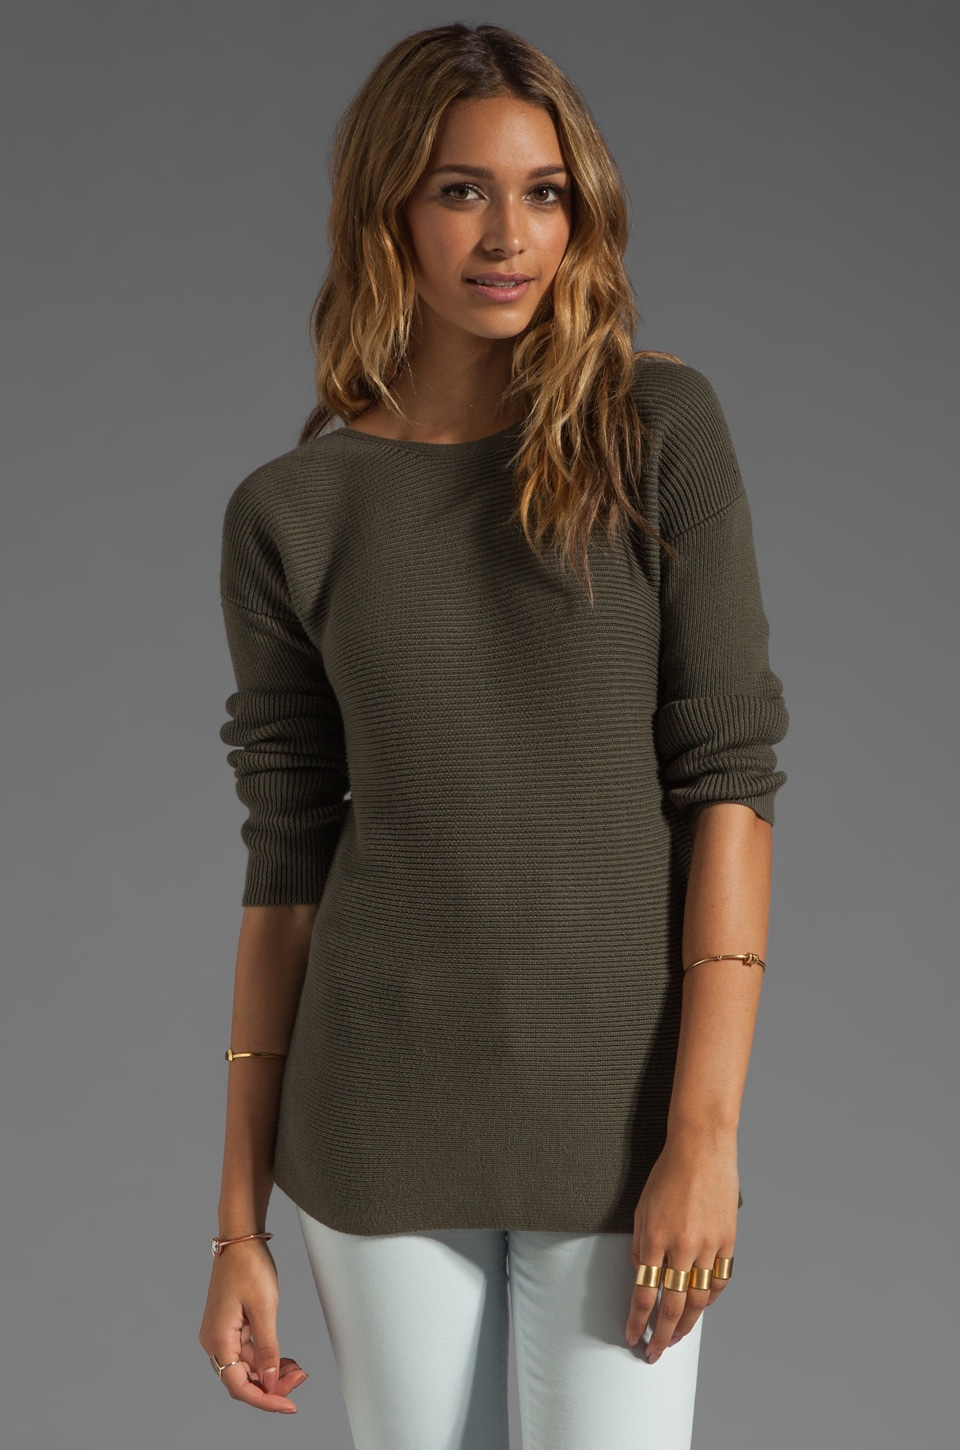 Theory Cotton Cashmere Lorinna Pullover in Khaki Green